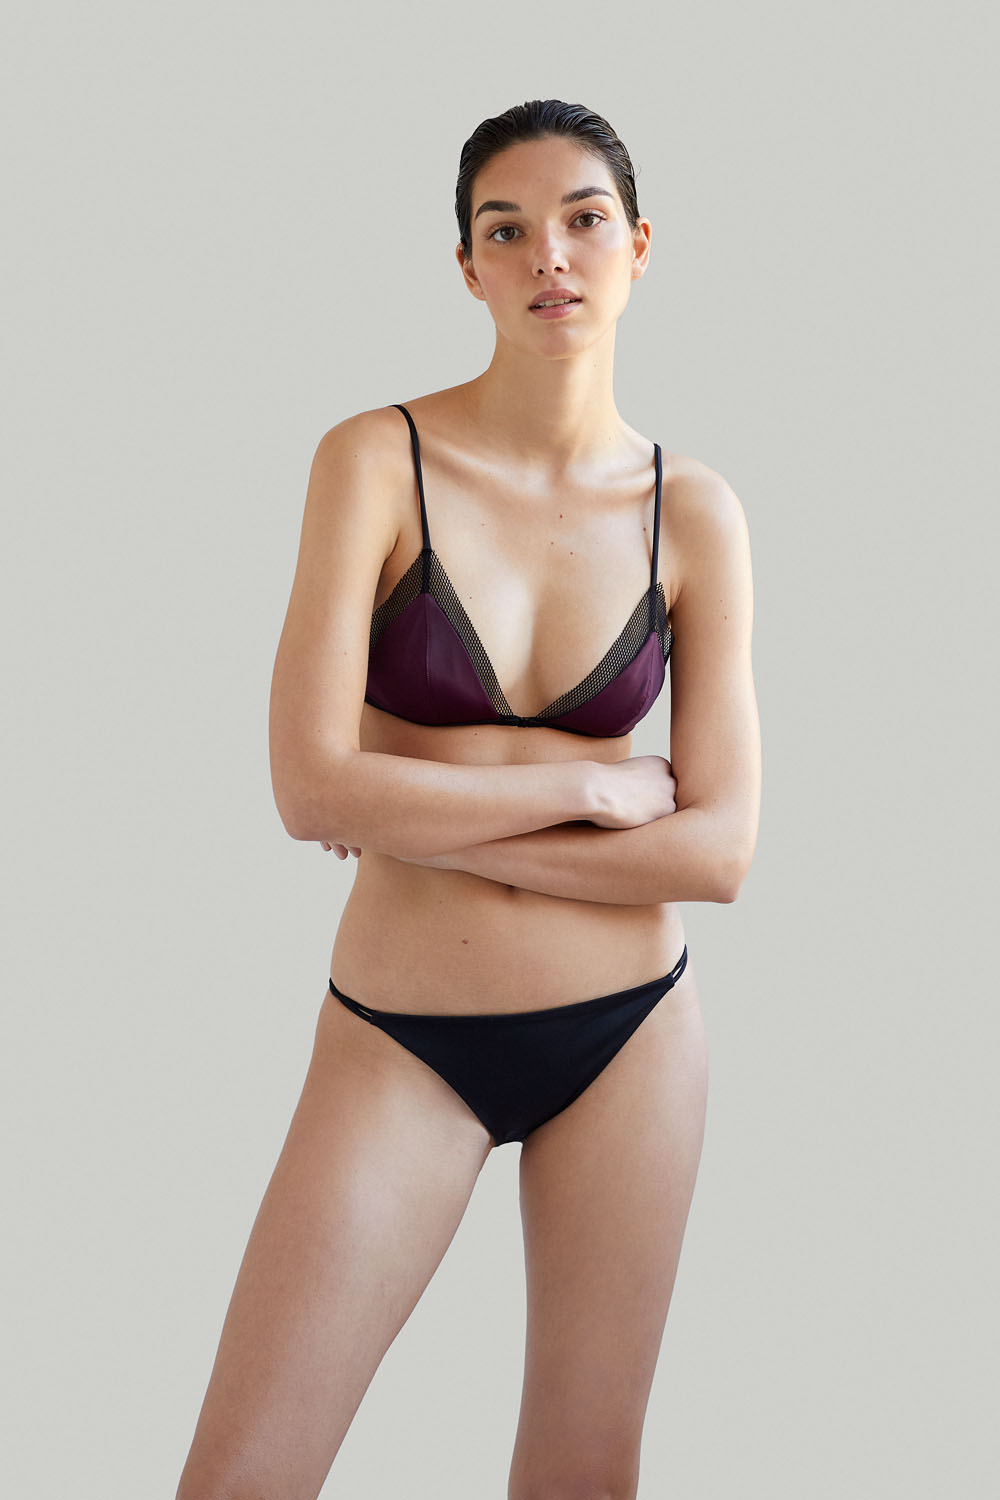 Sustainable Luxury Swimwear / Ropa de baño sostenible, eco bikini / bikini ecológico. Mana + Milos in plum, by NOW_THEN